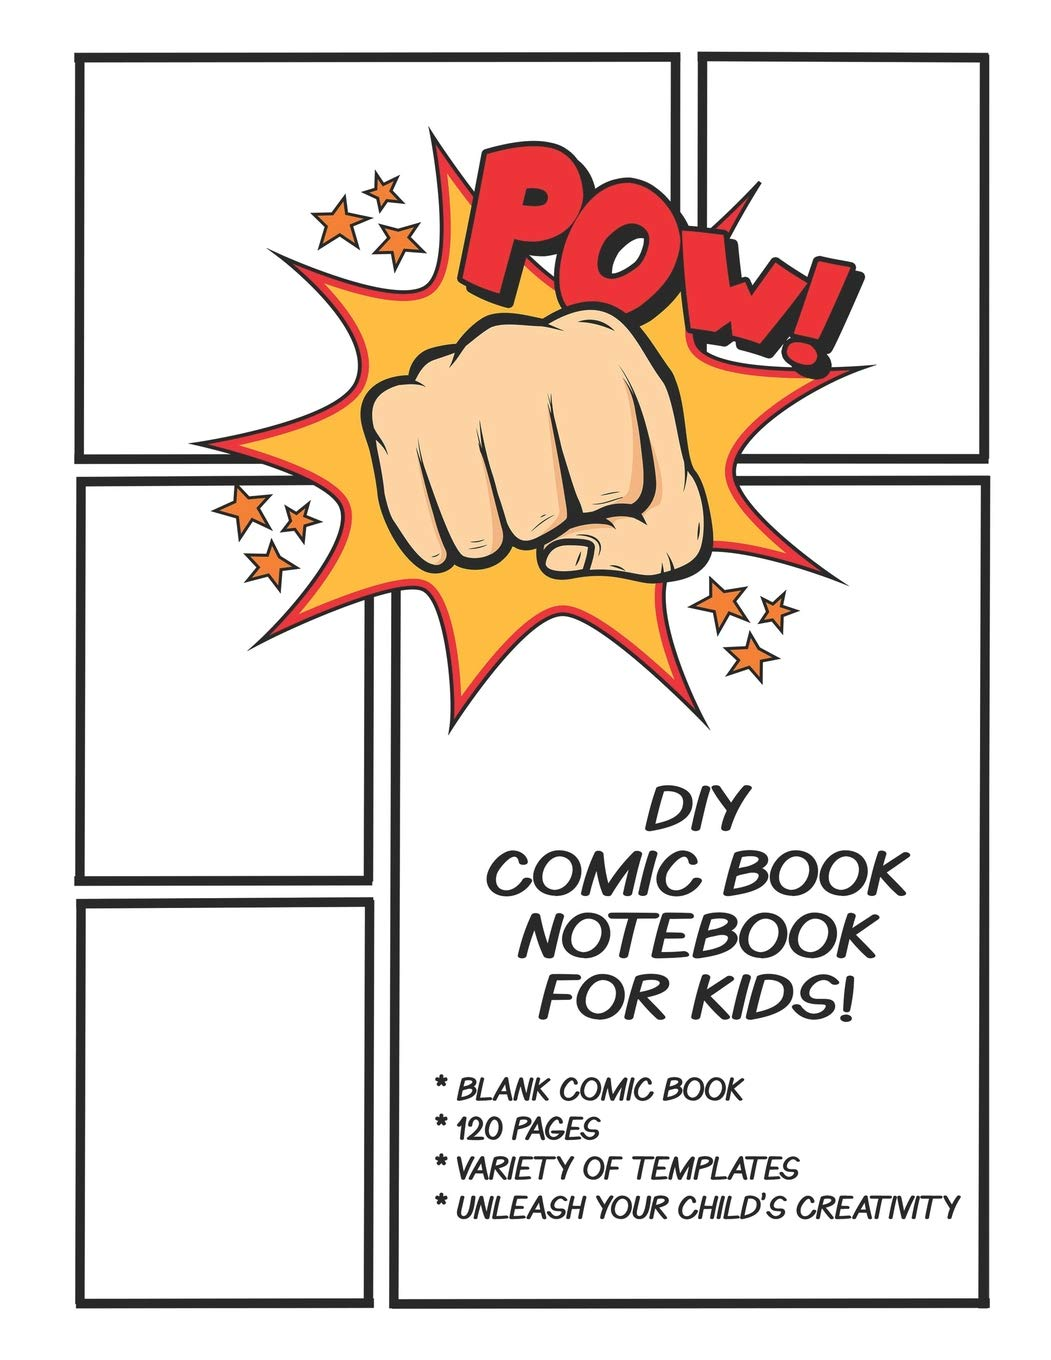 Unique Superhero Themed Templates Blank 17x11 Sketchbook Create Your Own Comic Strip Comic Maker Book Paper Boards for Cartoon and Comics Drawing Art Books for Kids